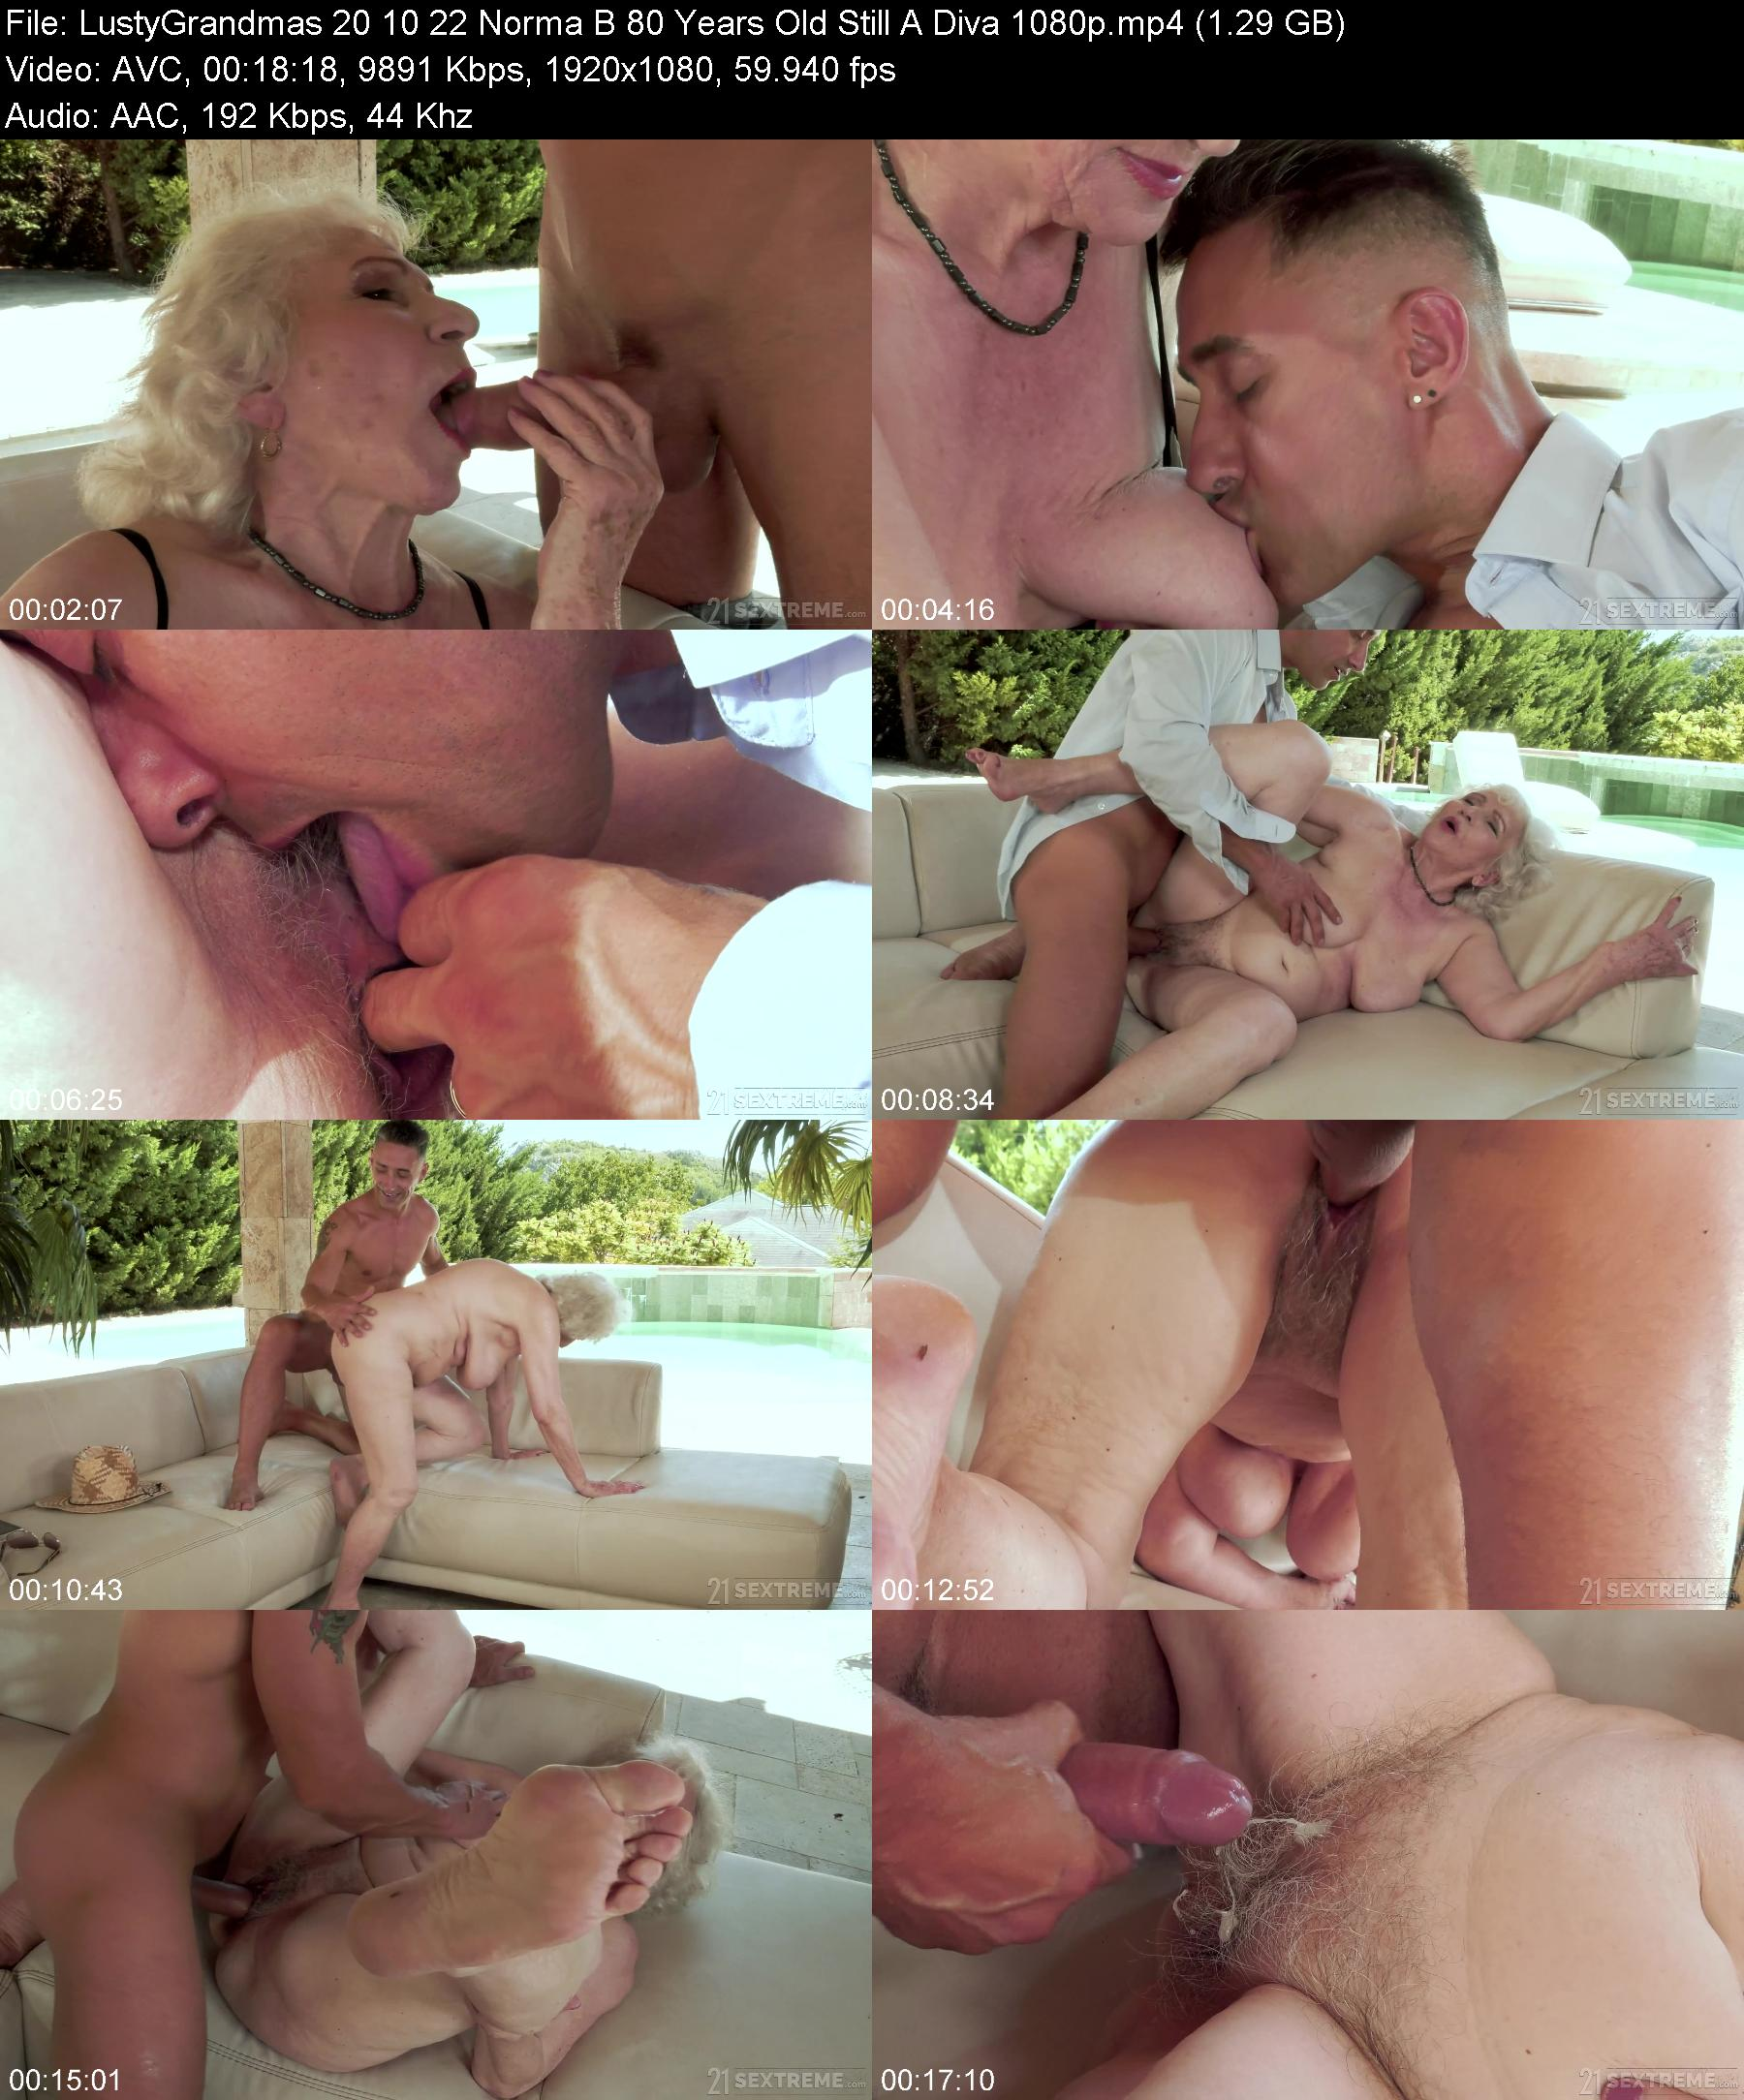 LustyGrandmas 20 10 22 Norma B 80 Years Old Still A Diva XXX 1080p MP4-XXX